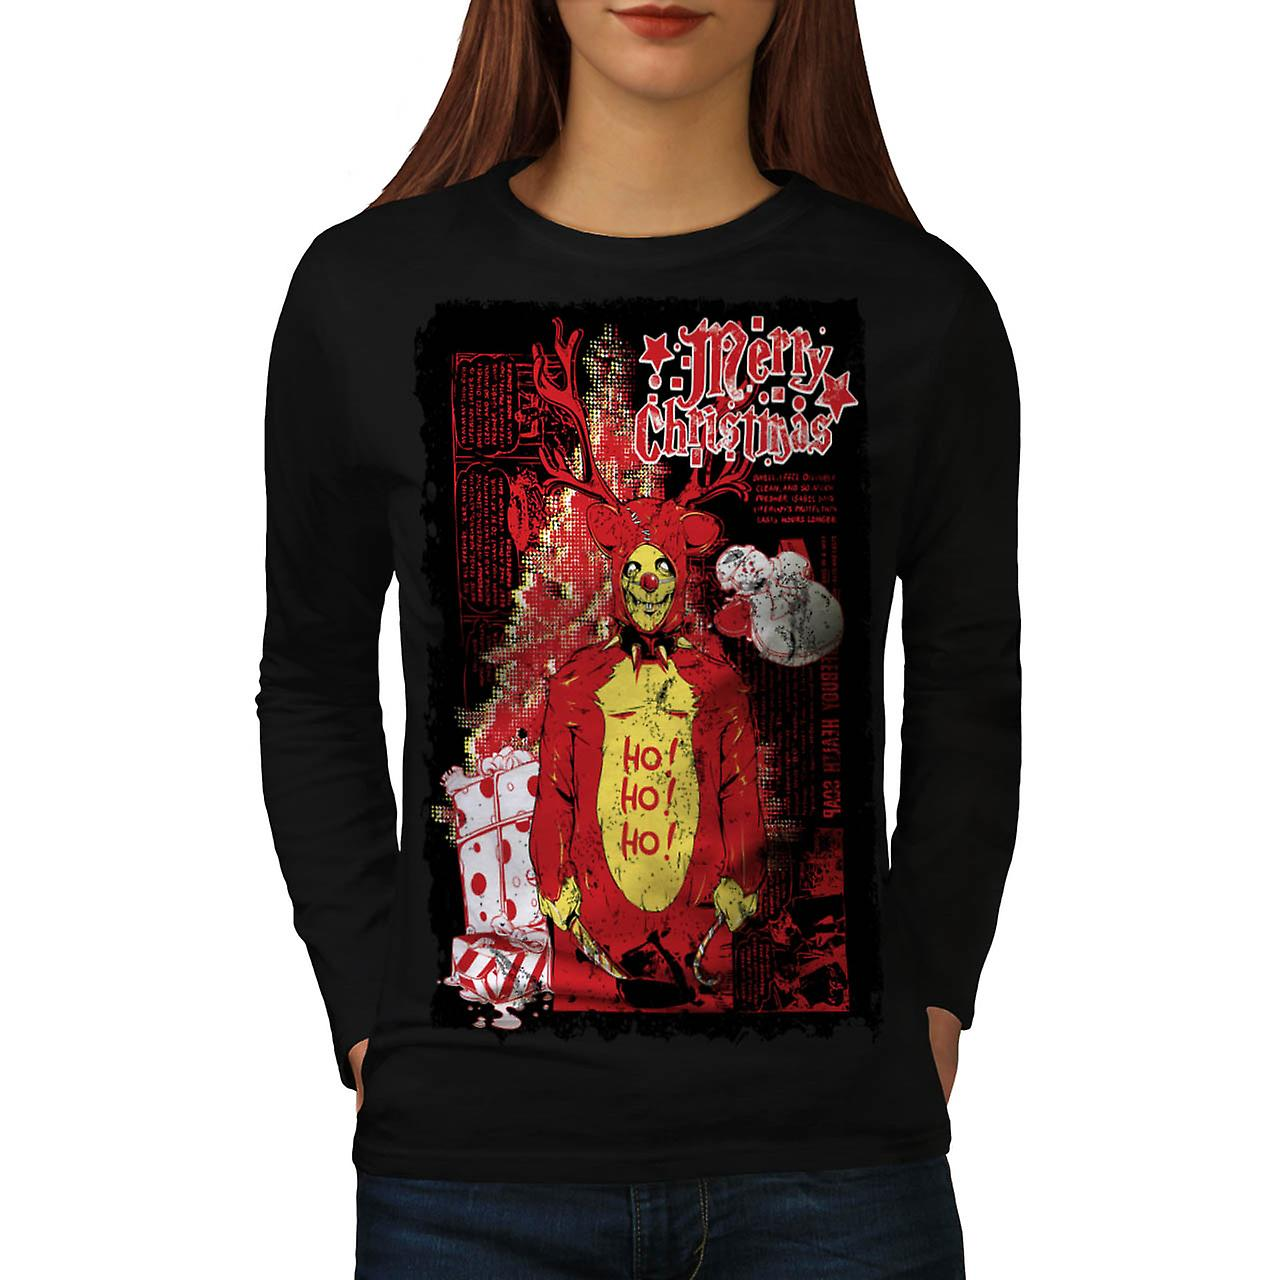 Evil Merry Christmas Reindeer Women Black Long Sleeve T-shirt | Wellcoda